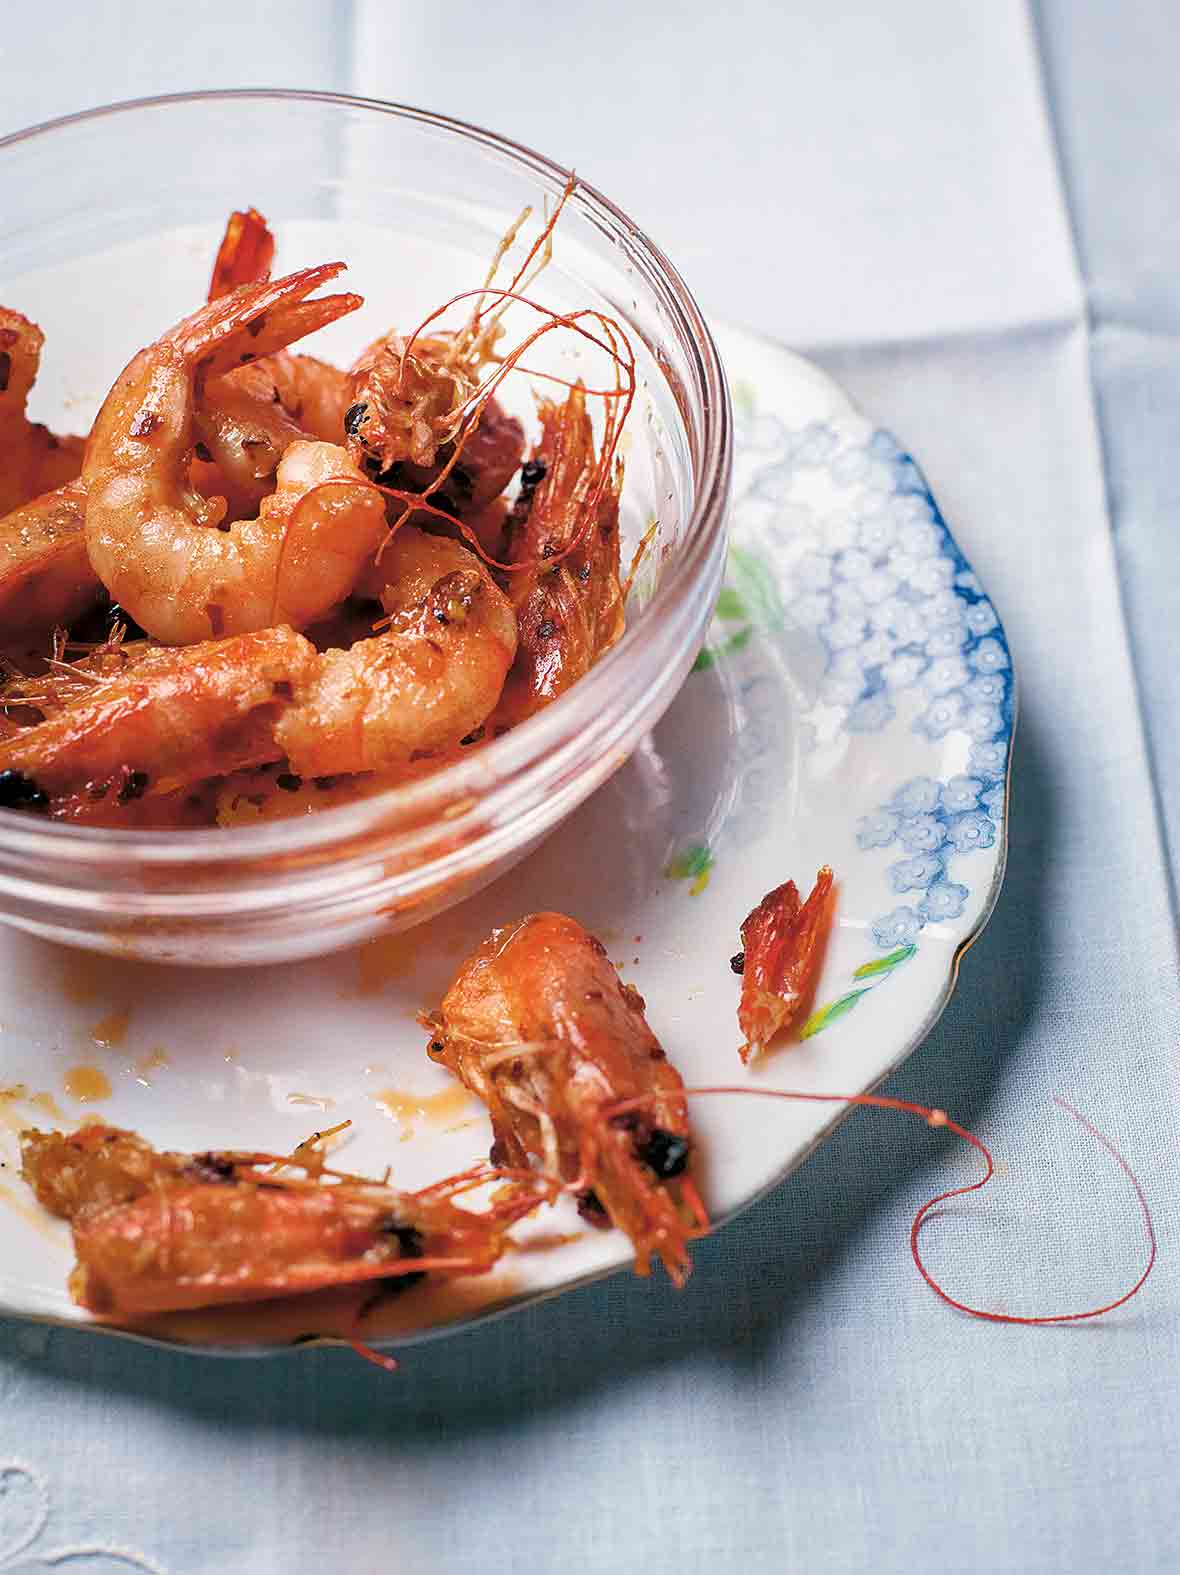 Glass bowl filled with garlic shrimp, sautéed with oil, butter, chiles pepper, and garlic